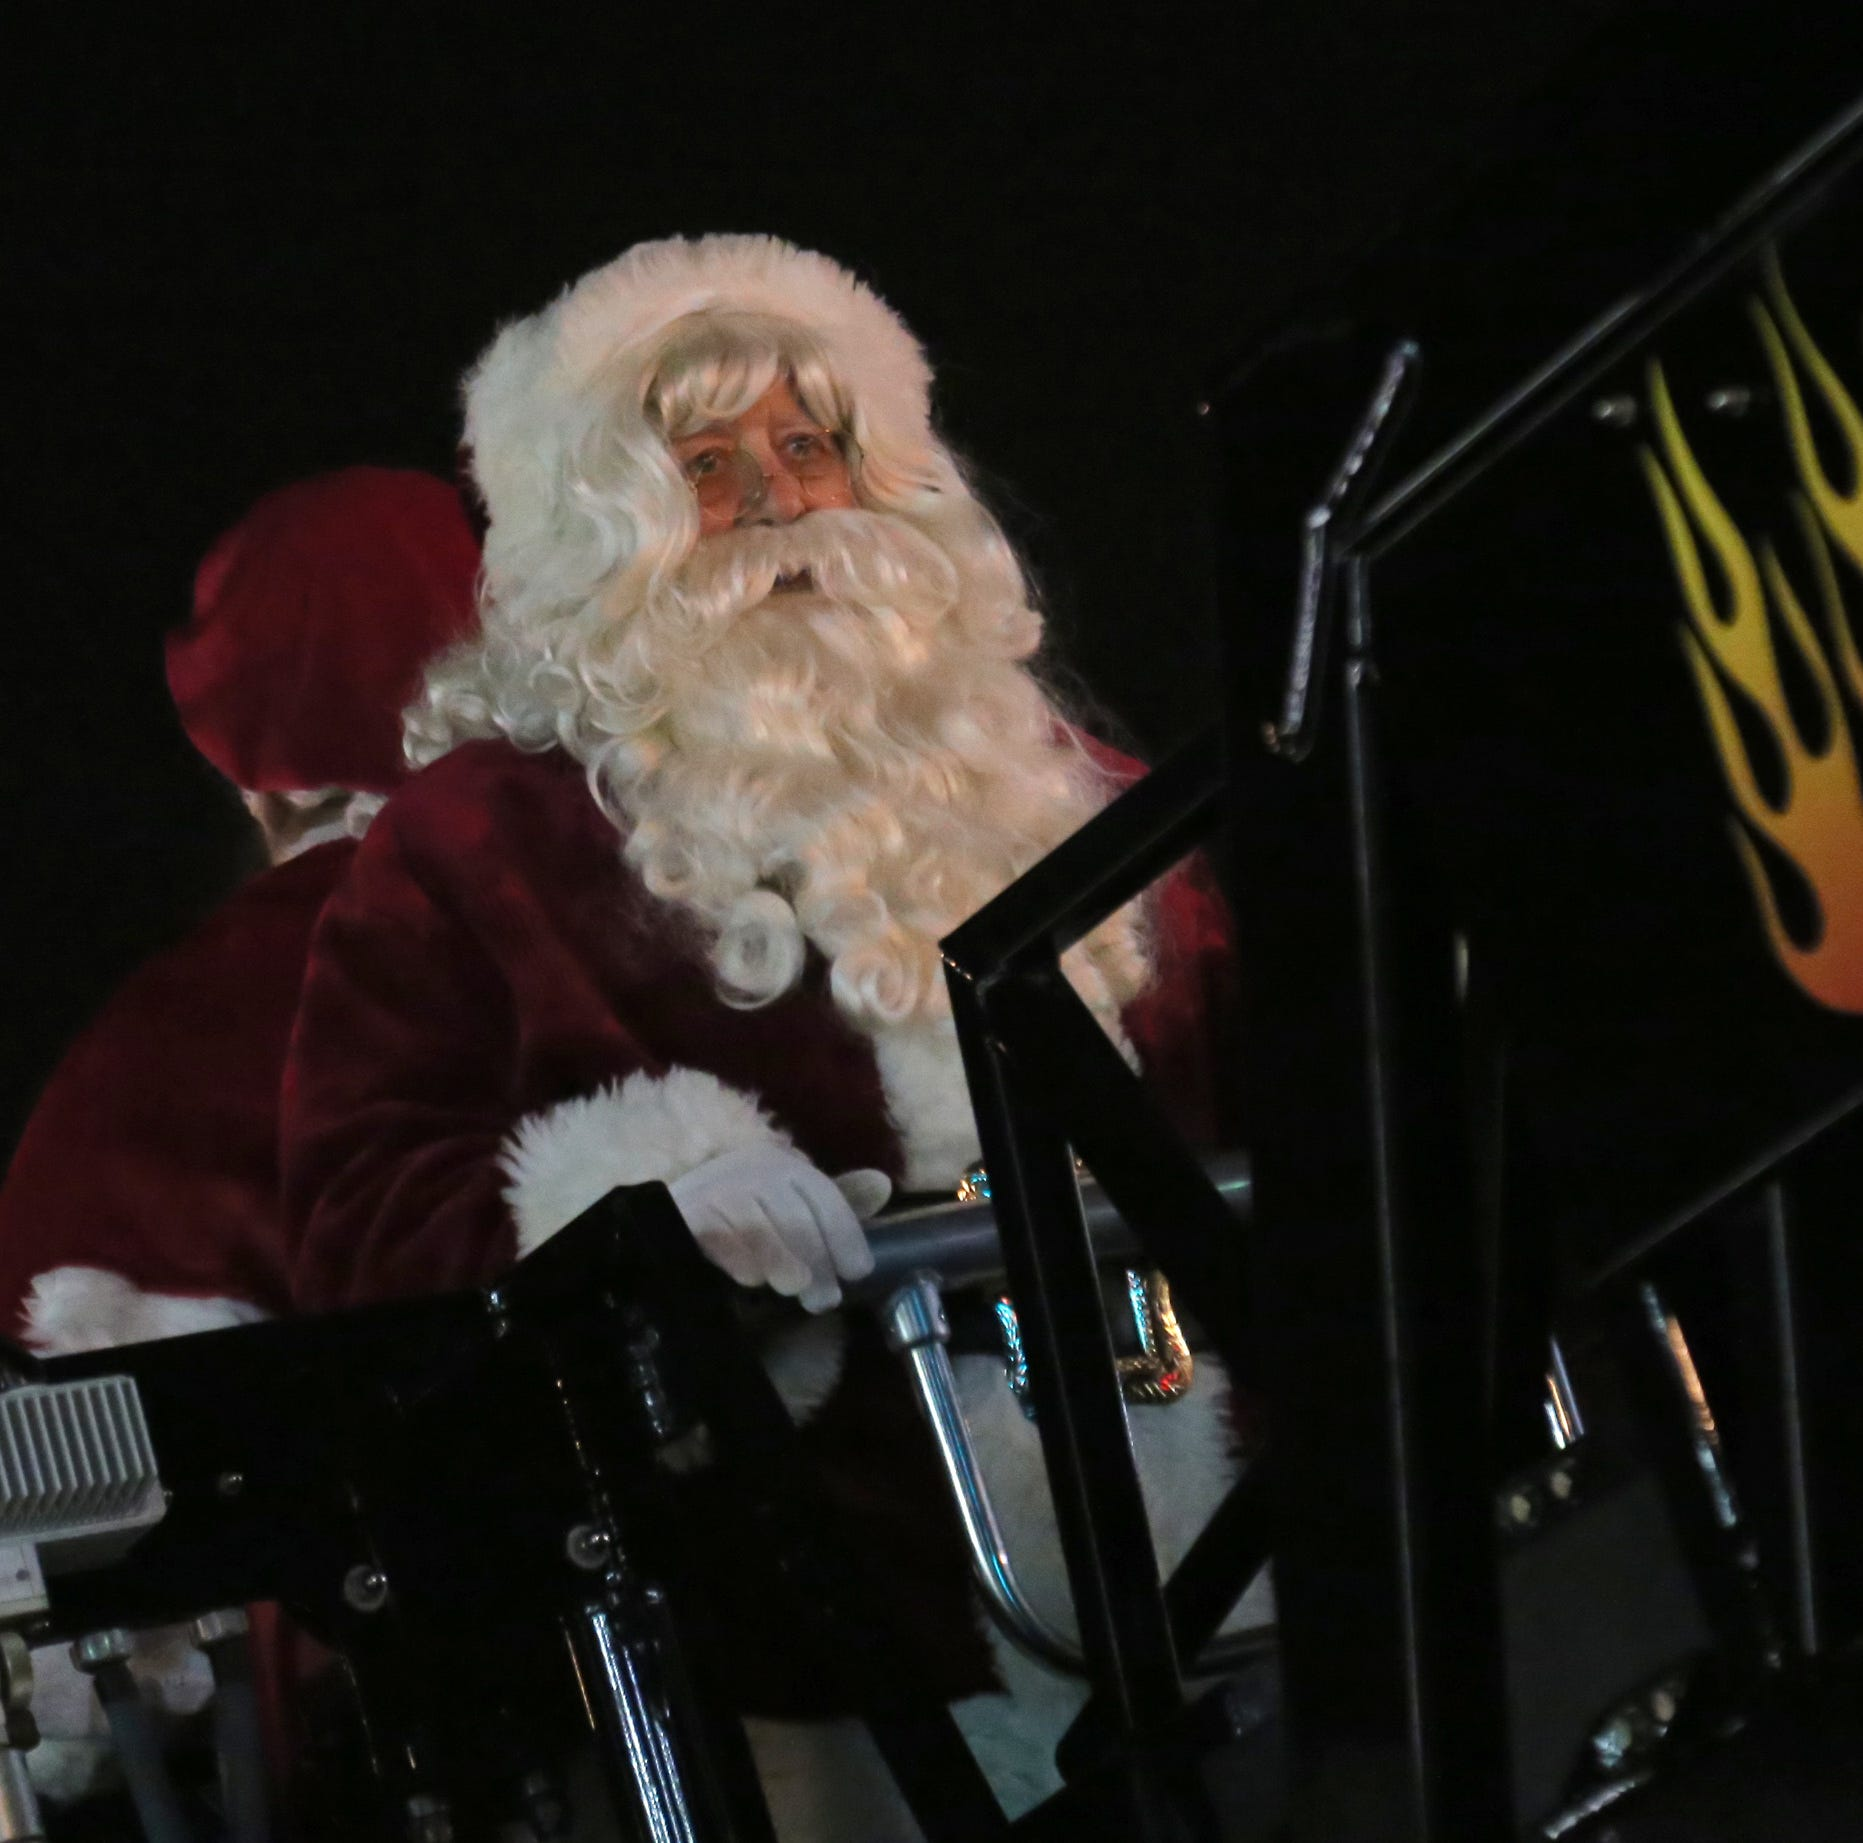 Santa Claus arrives in Bucyrus